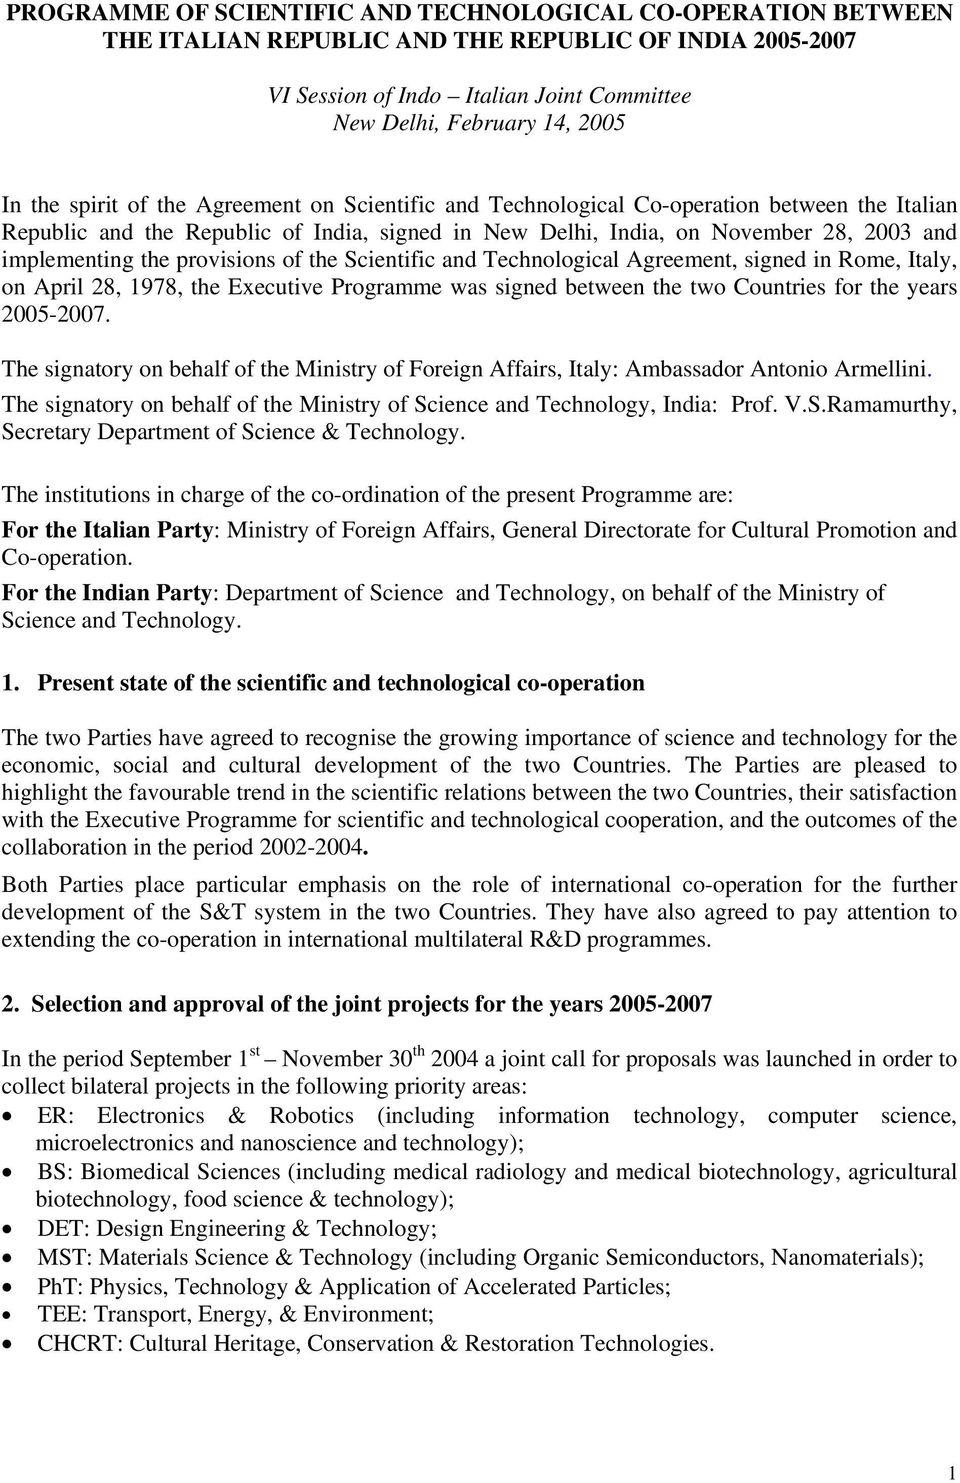 provisions of the Scientific and Technological Agreement, signed in Rome, Italy, on April 28, 1978, the Executive Programme was signed between the two Countries for the years 2005-2007.